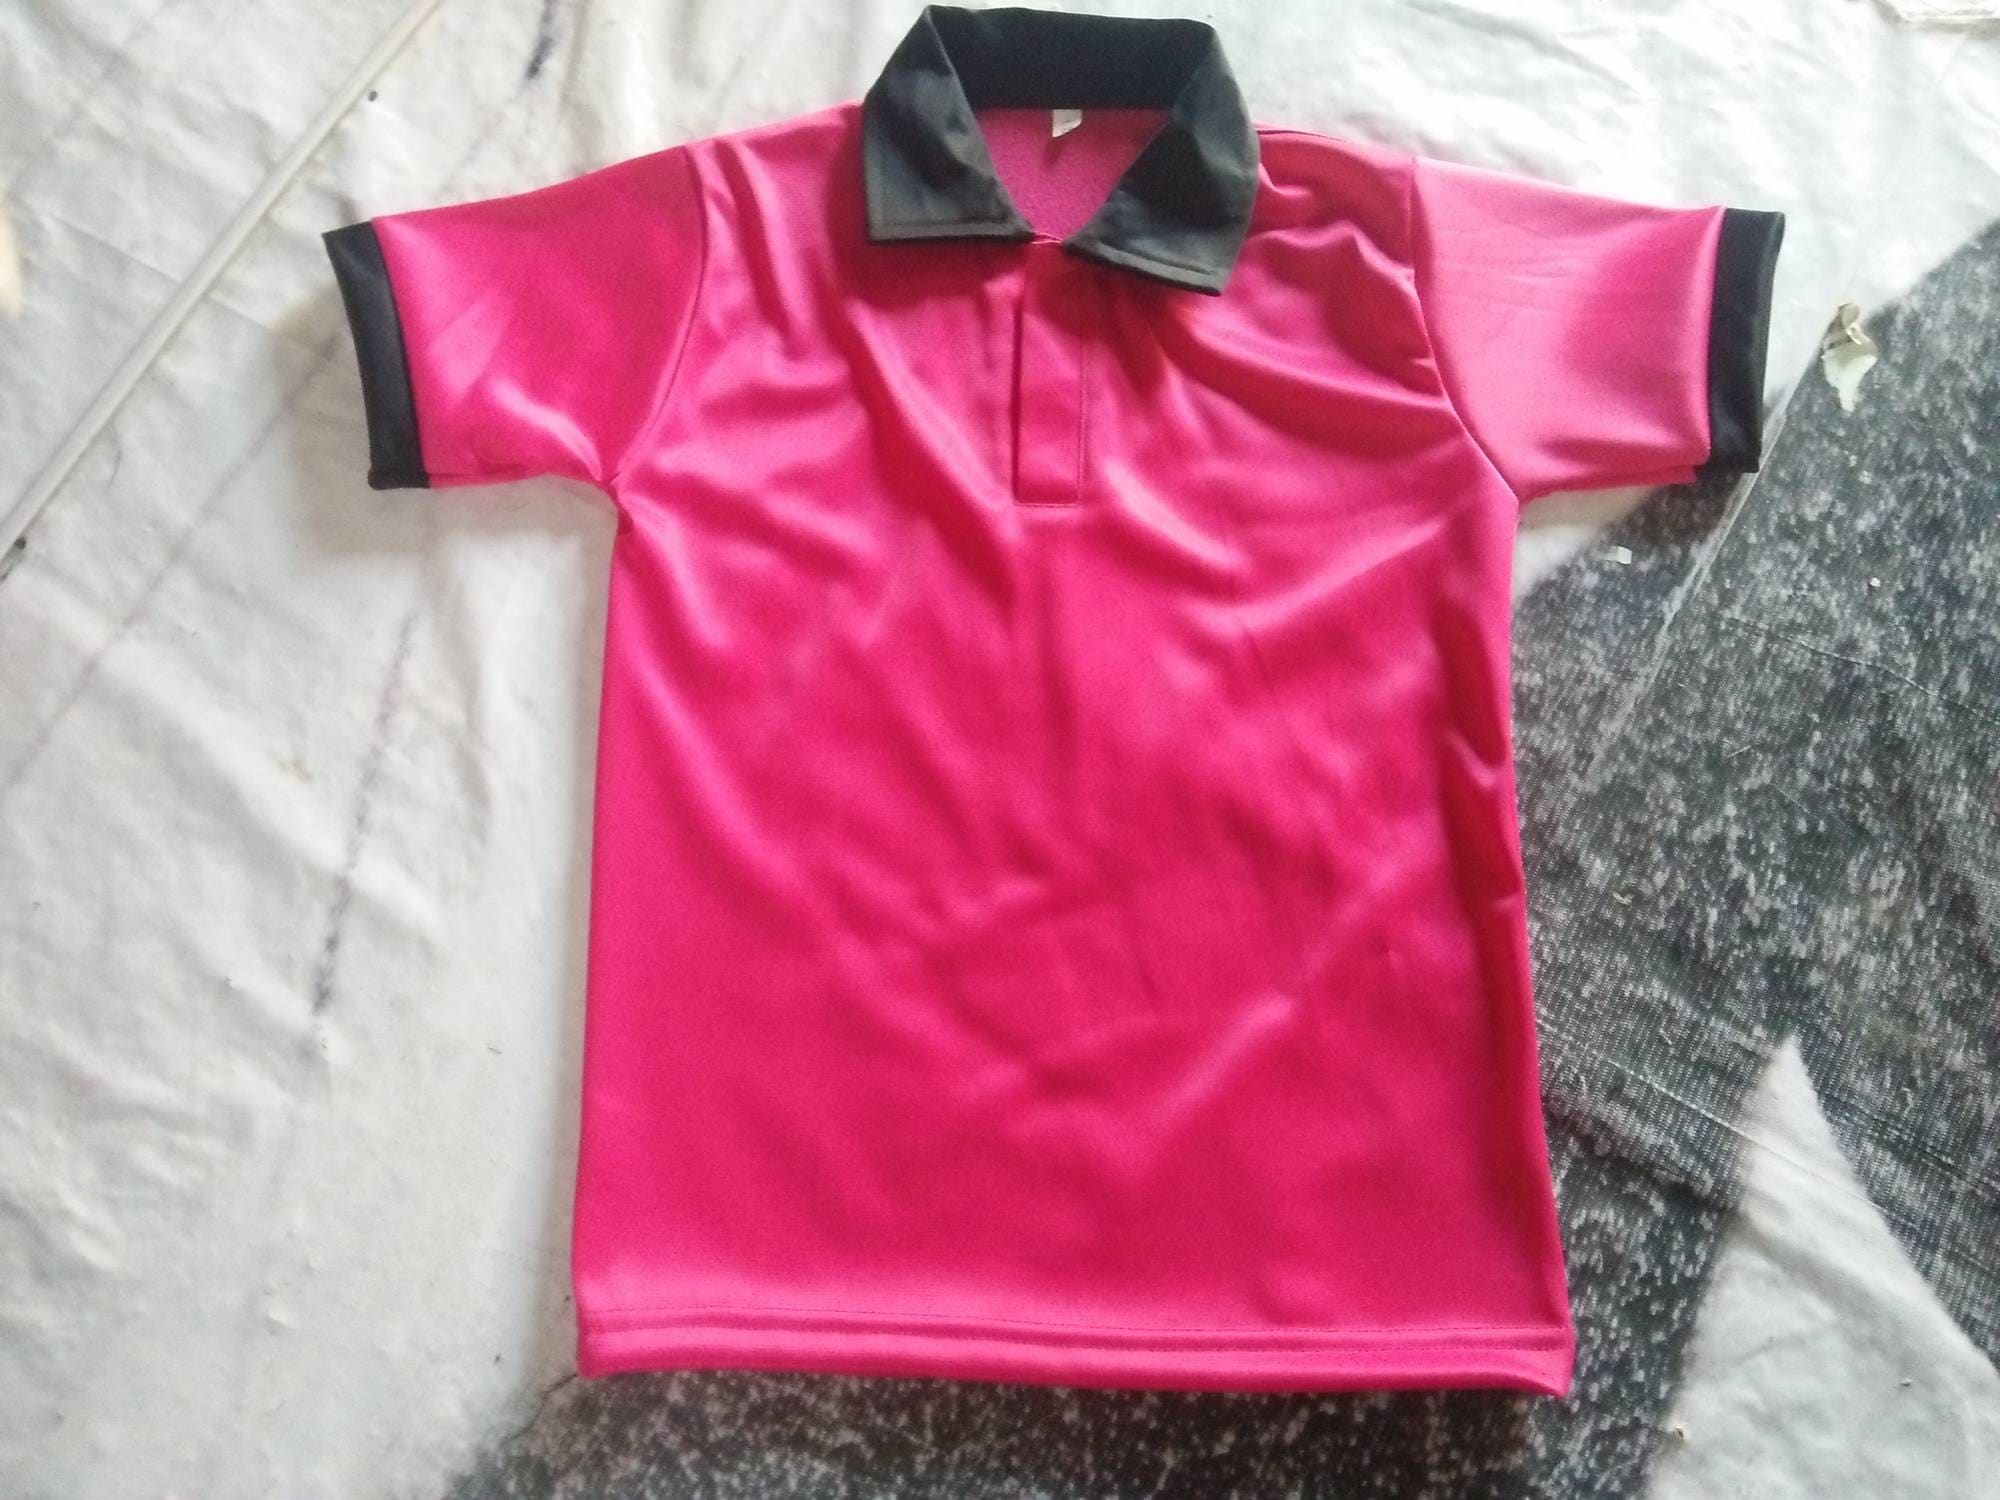 Top 50 Readymade Garment Manufacturers in Solapur - Best Clothes